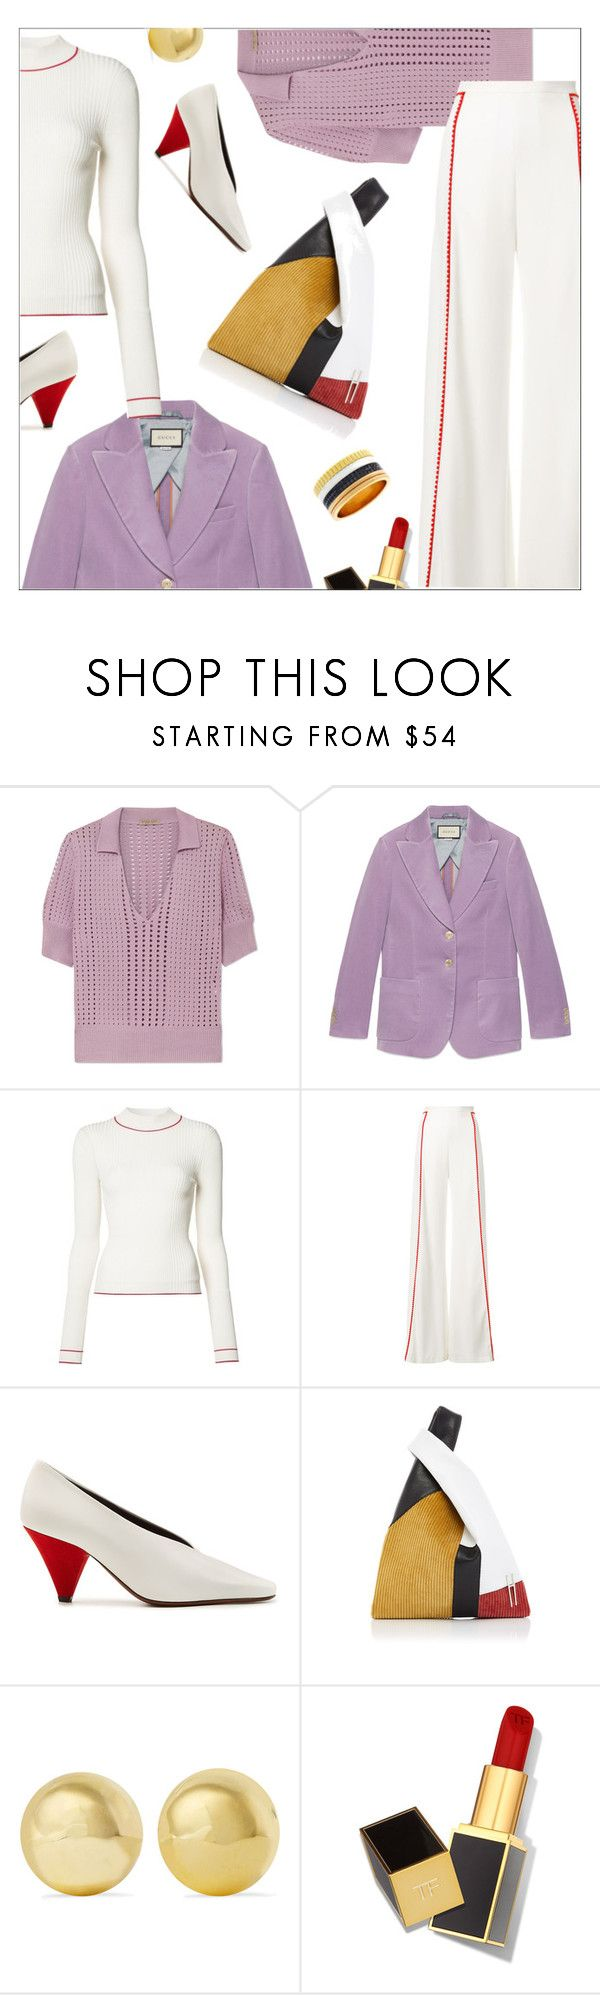 """LAVENDER TOUCH"" by laste-co ❤ liked on Polyvore featuring Bottega Veneta, Gucci, Misha Nonoo, Galvan, Neous, Amaranta, Kenneth Jay Lane, Tom Ford and Boucheron"